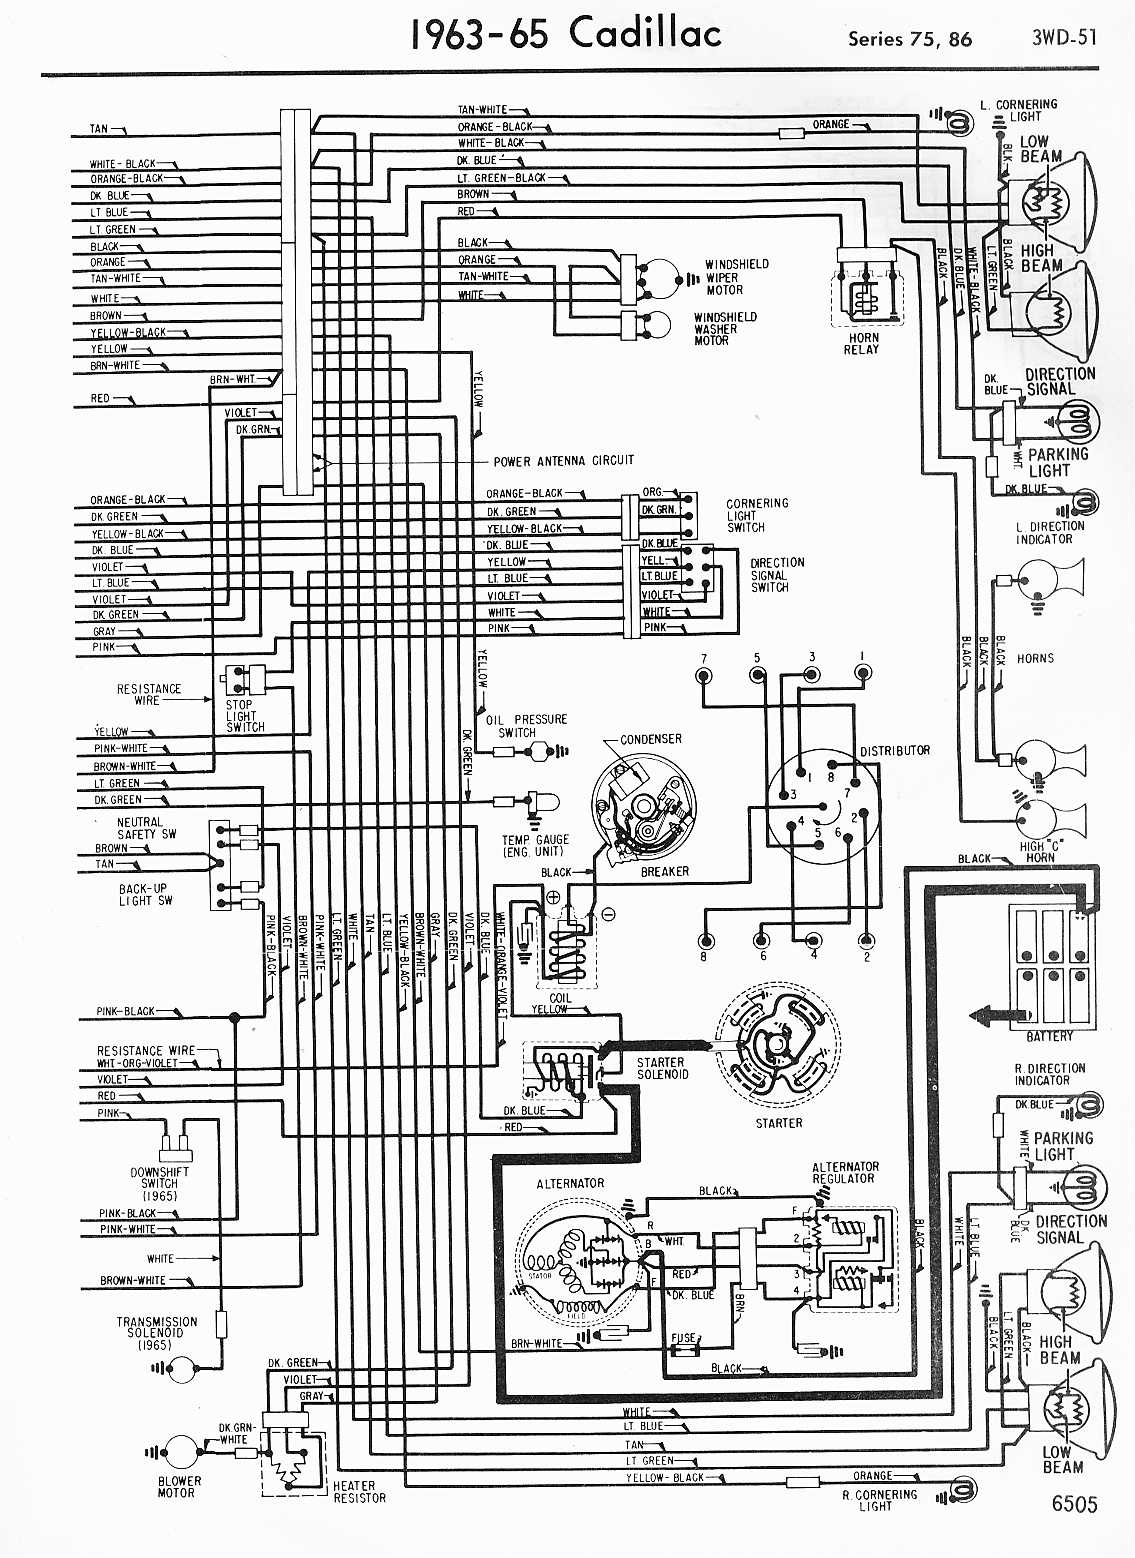 MWireCadi65_3WD 051 1999 cadillac deville starter wiring wiring diagram simonand El Dorado Movie at readyjetset.co